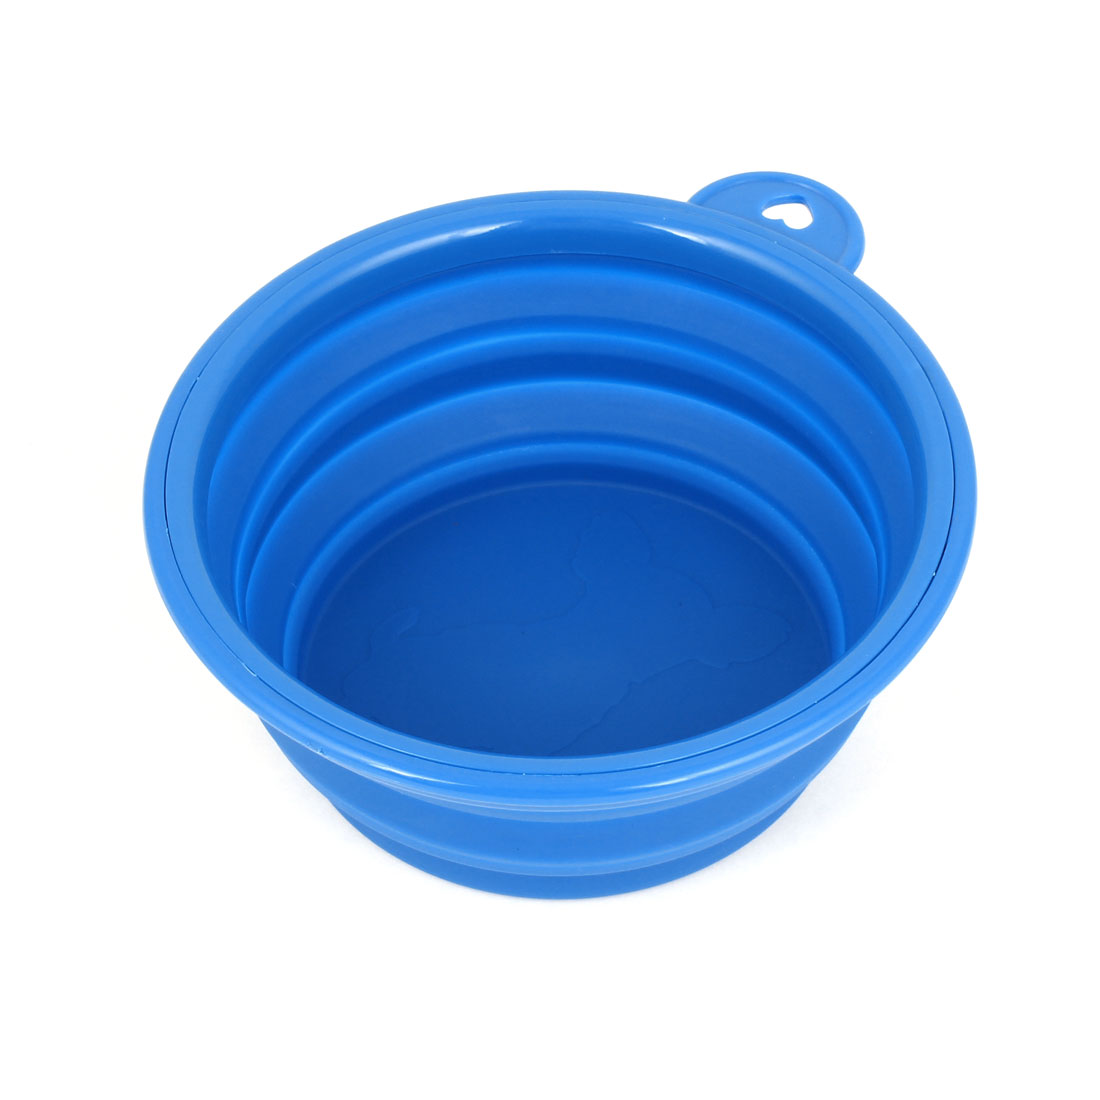 13cm Diameter 5.5cm Height Foldable Doggie Dog Pet Rubber Eat Food Water Bowl Dish Blue